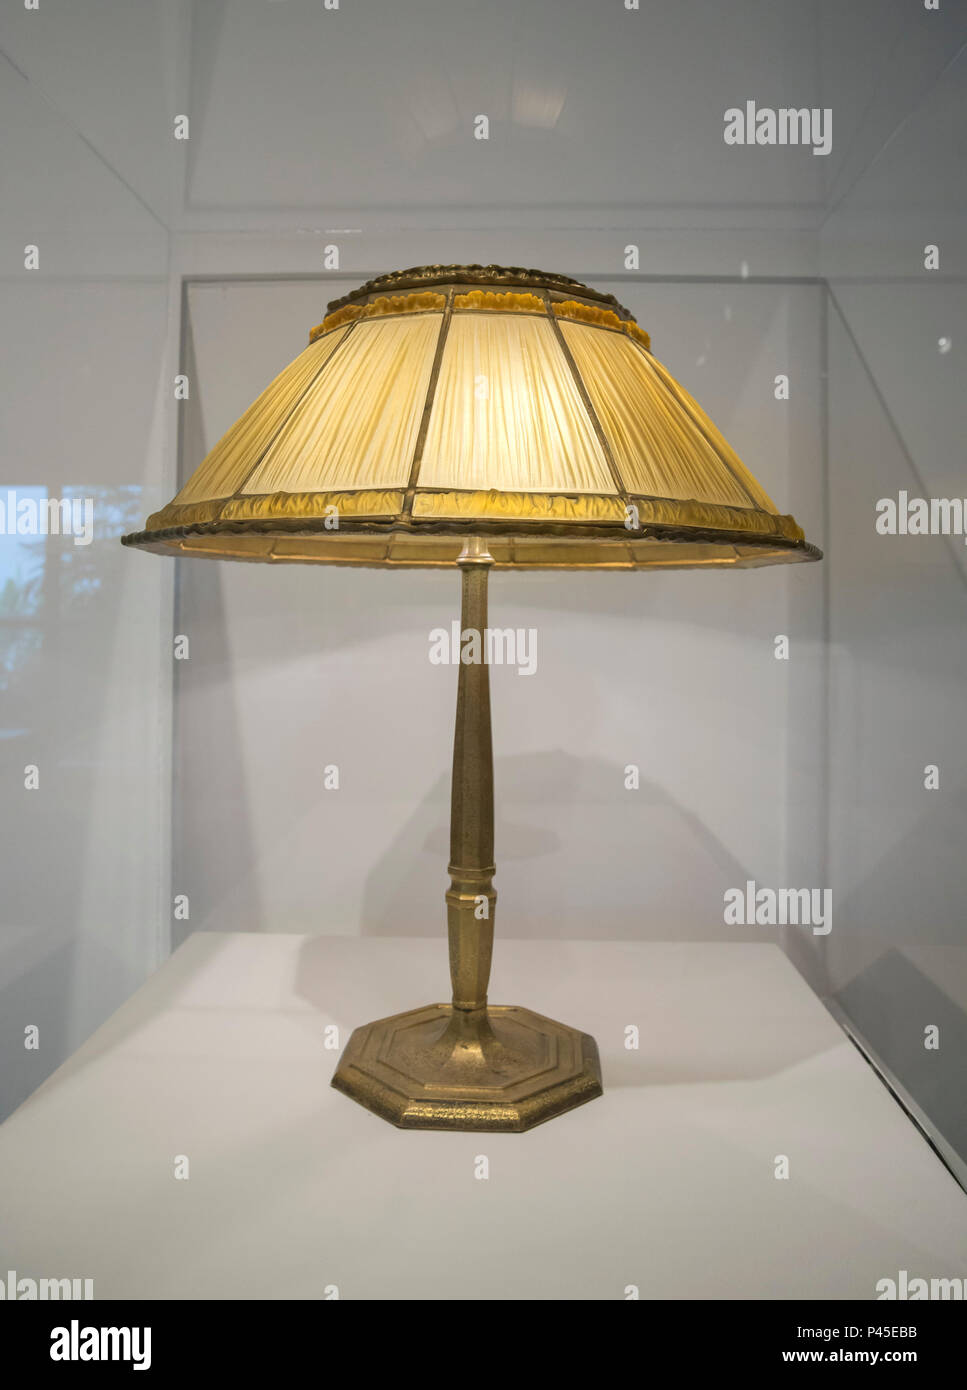 Linenfold Table Lamp by Louis Comfort Tiffany, early 20th century. Stock Photo